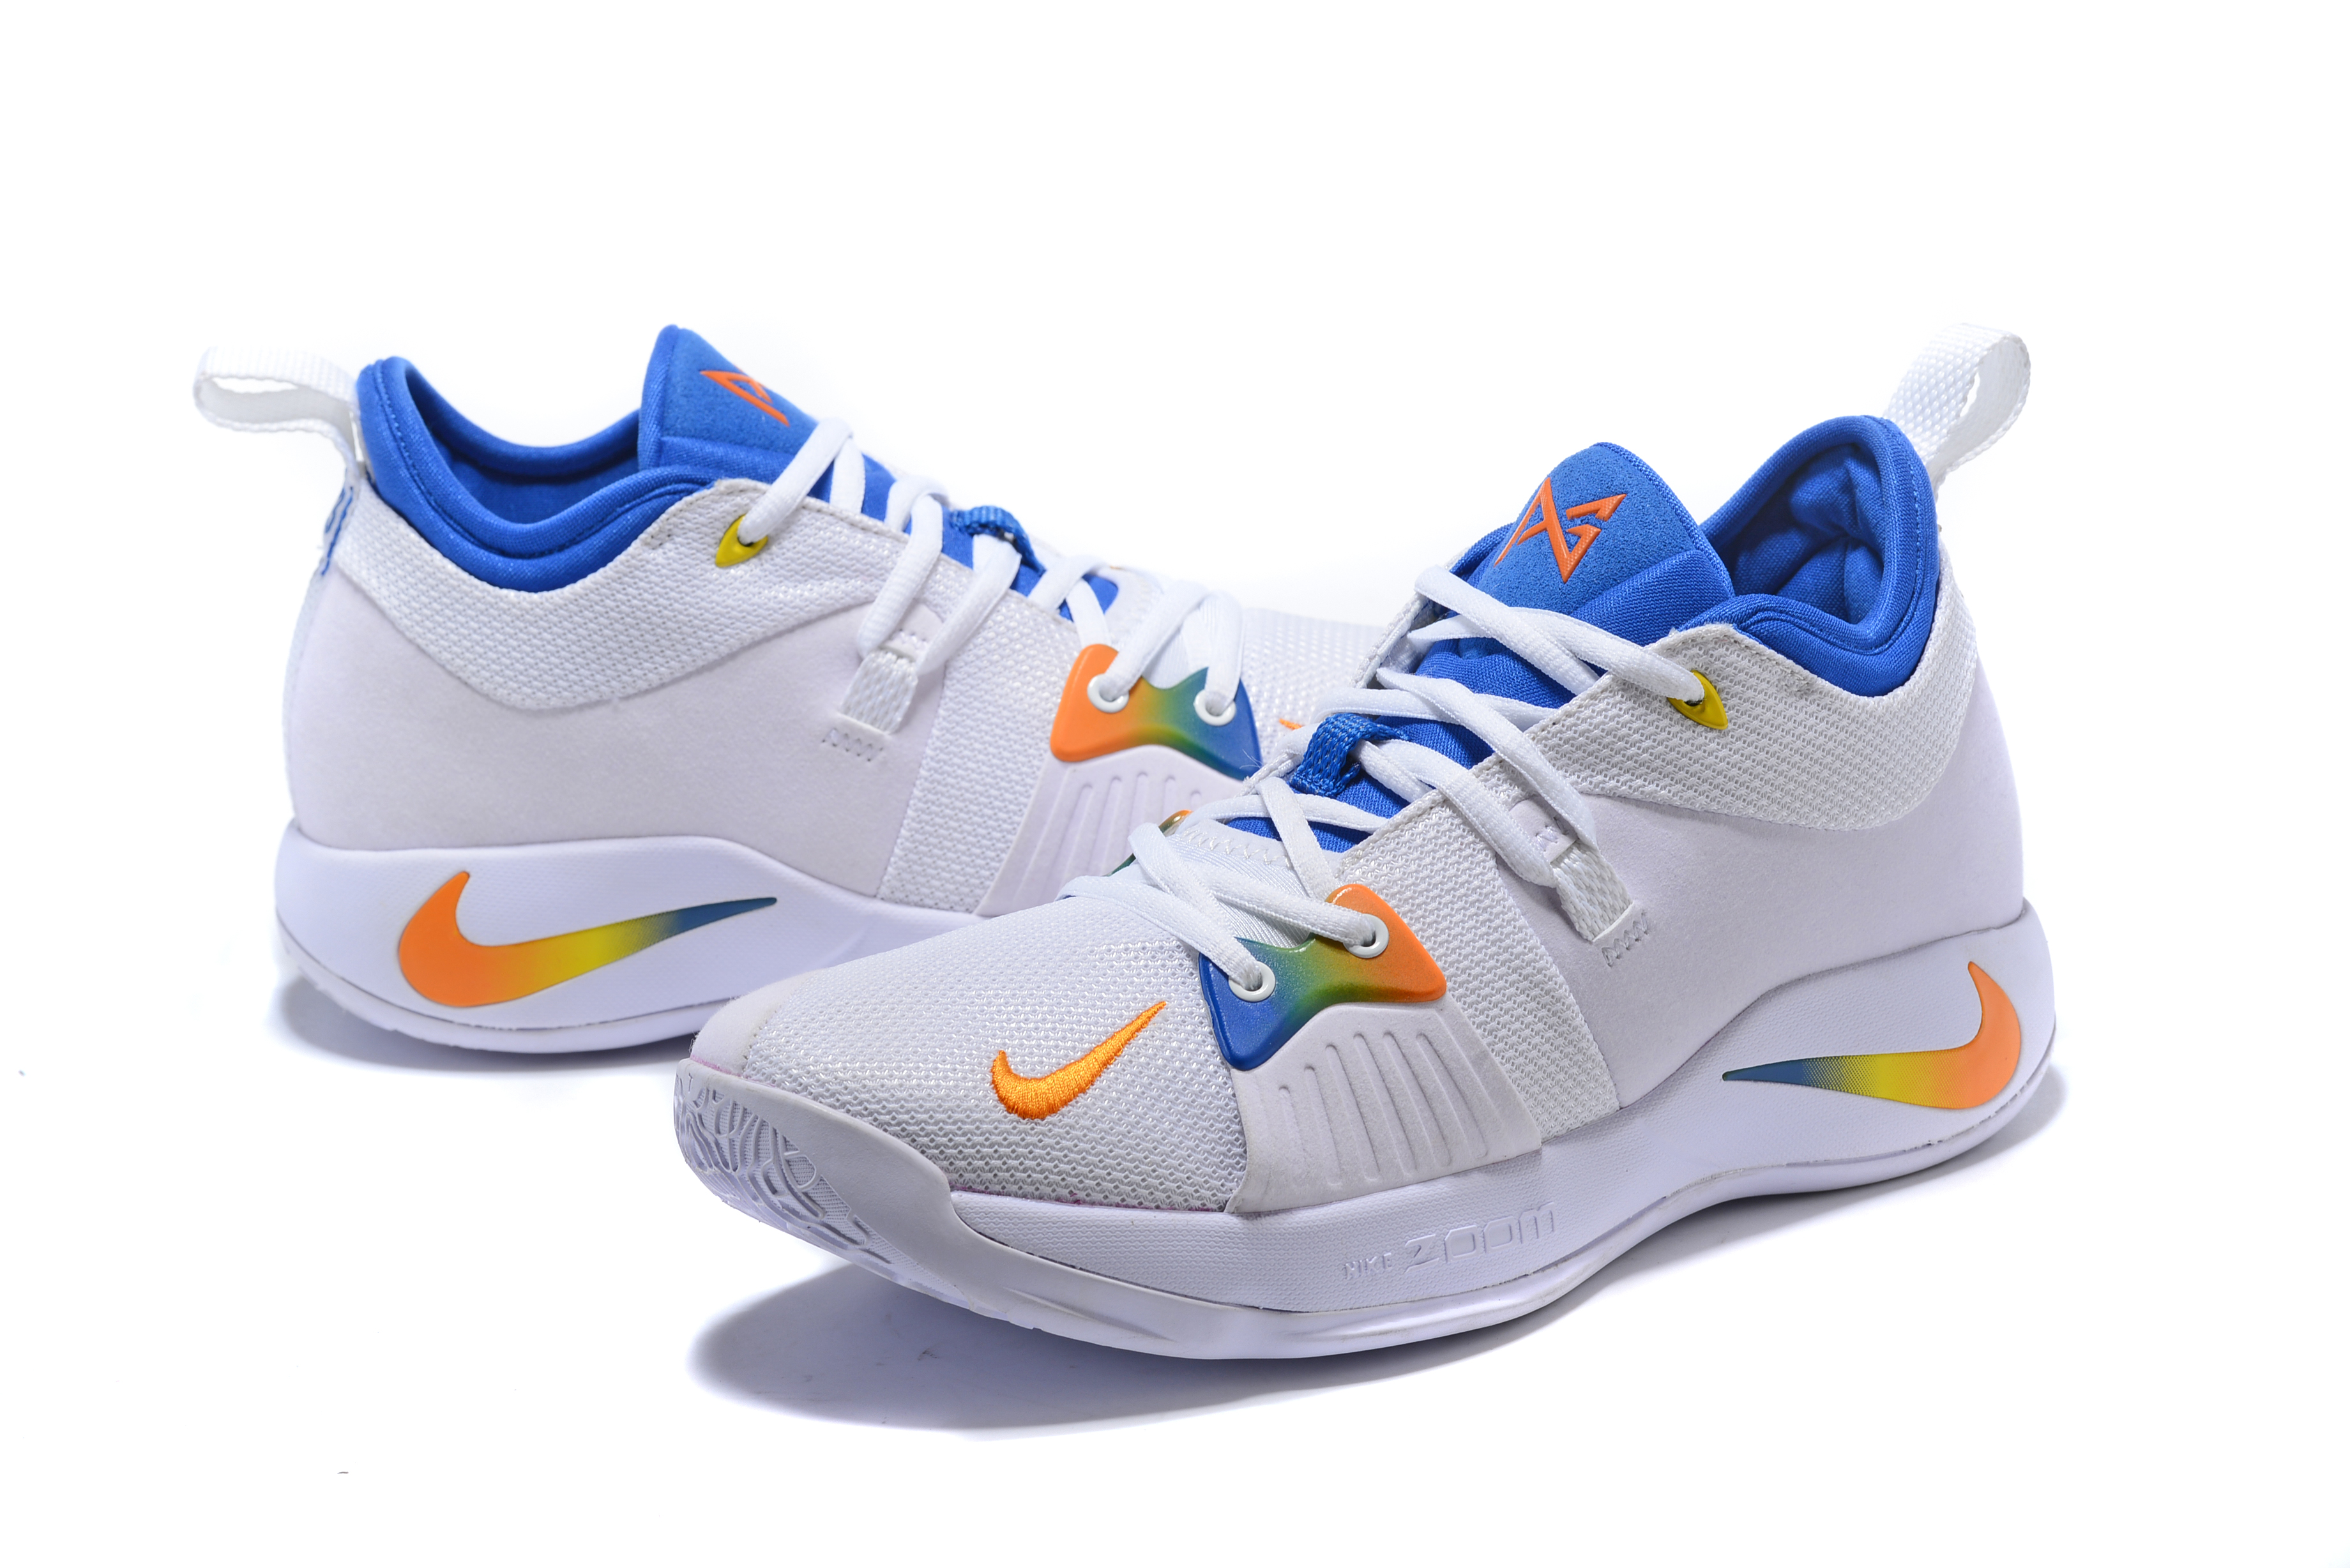 New Men Nike PG 2 White Yellow Blue Shoes